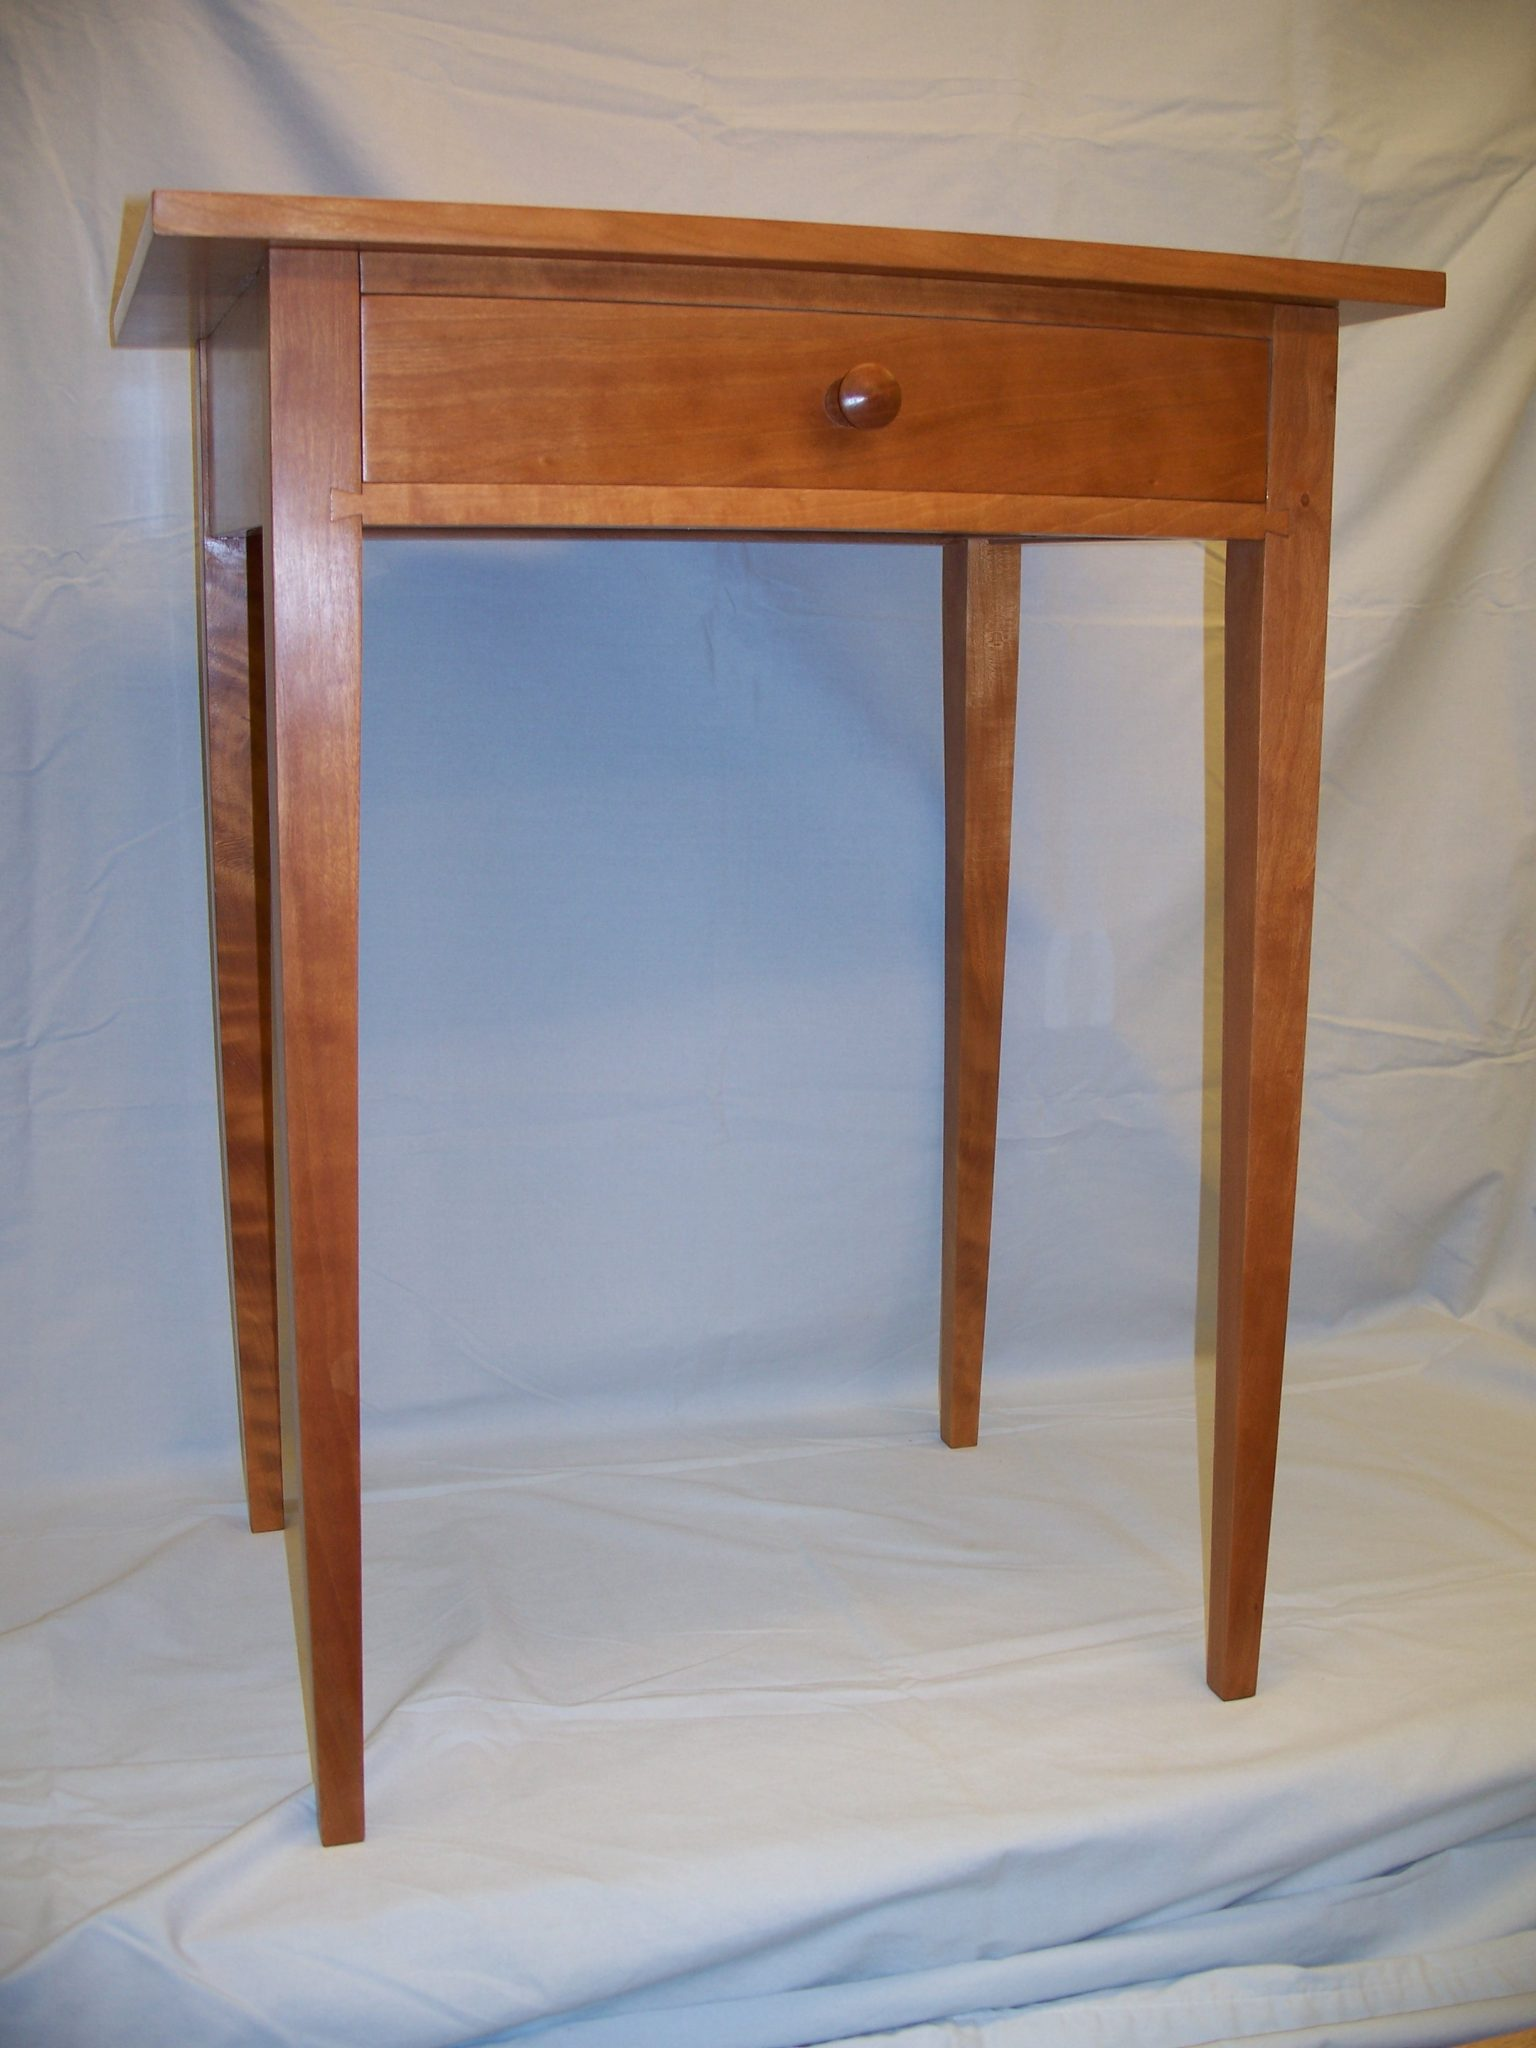 Shaker style Cherry Night Table from plans in Fine Woodworking